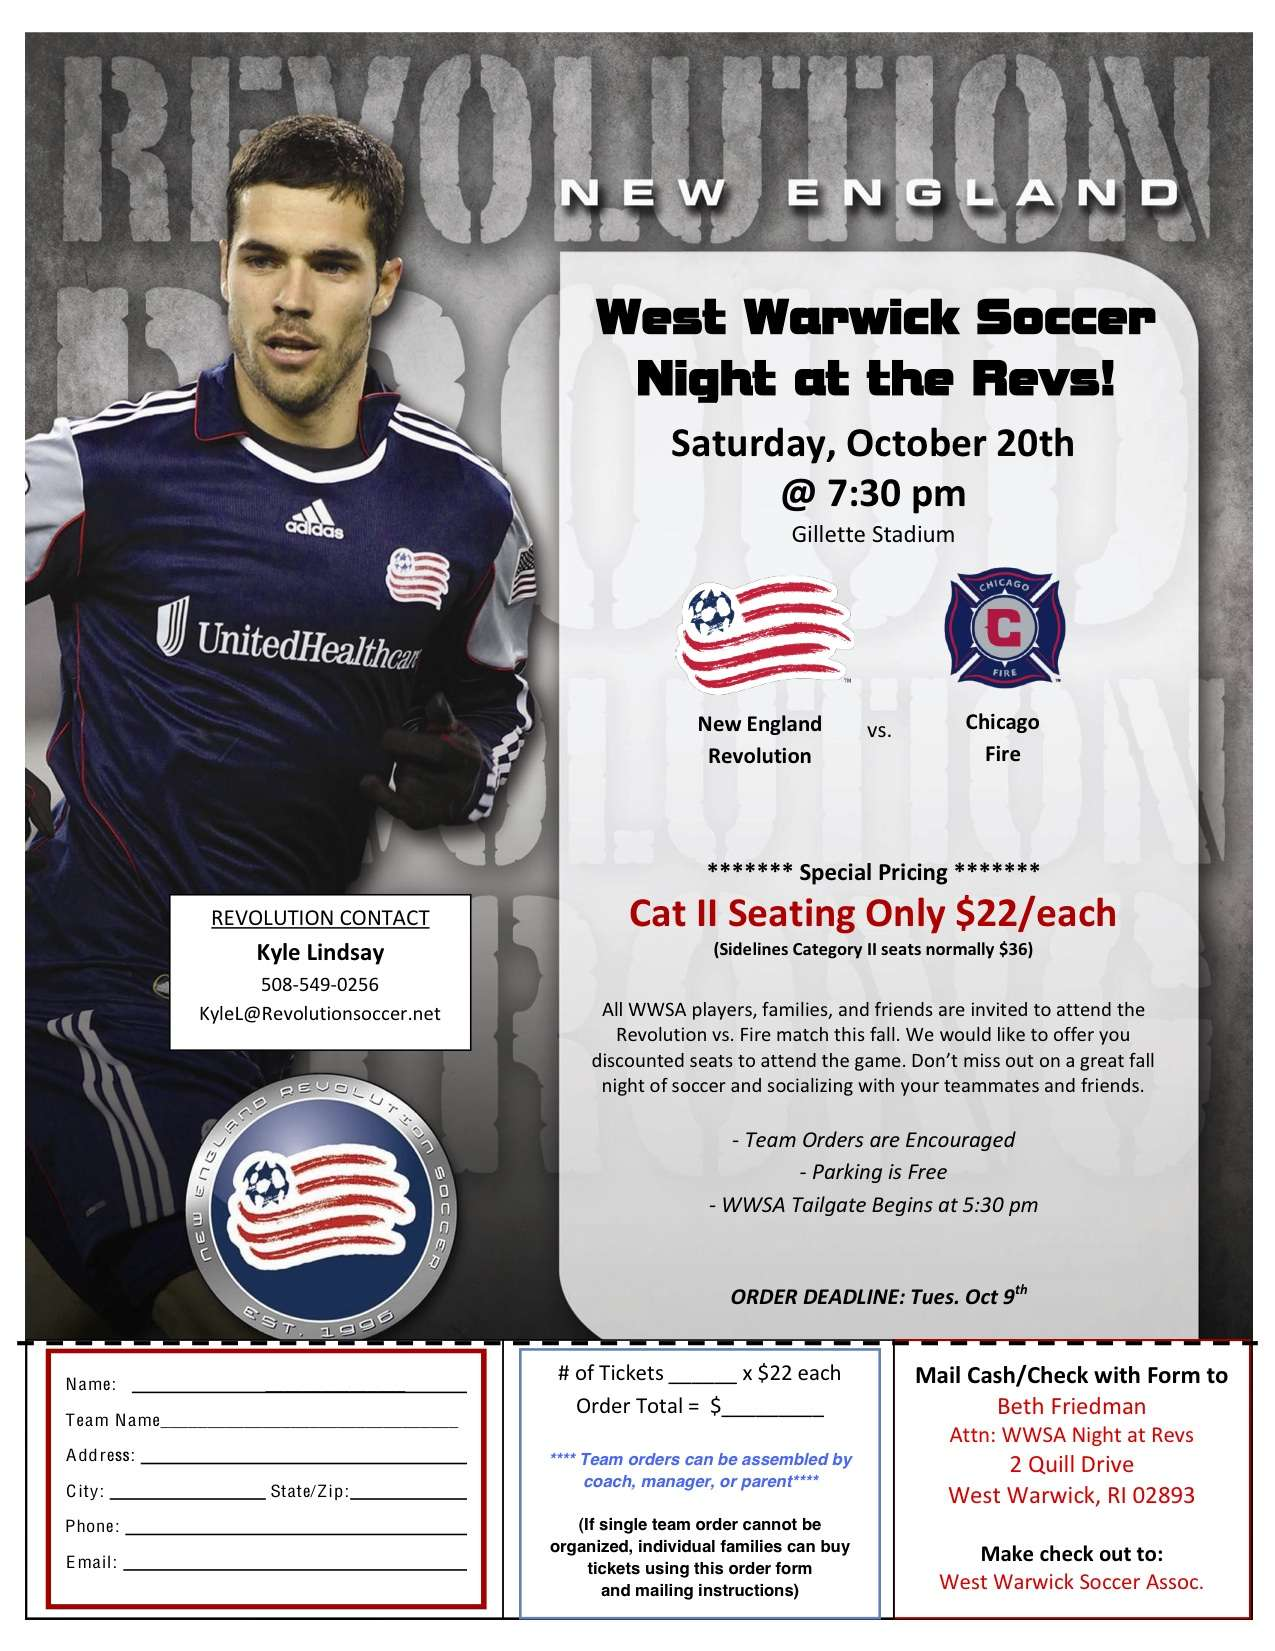 WWSA Night at the REVS